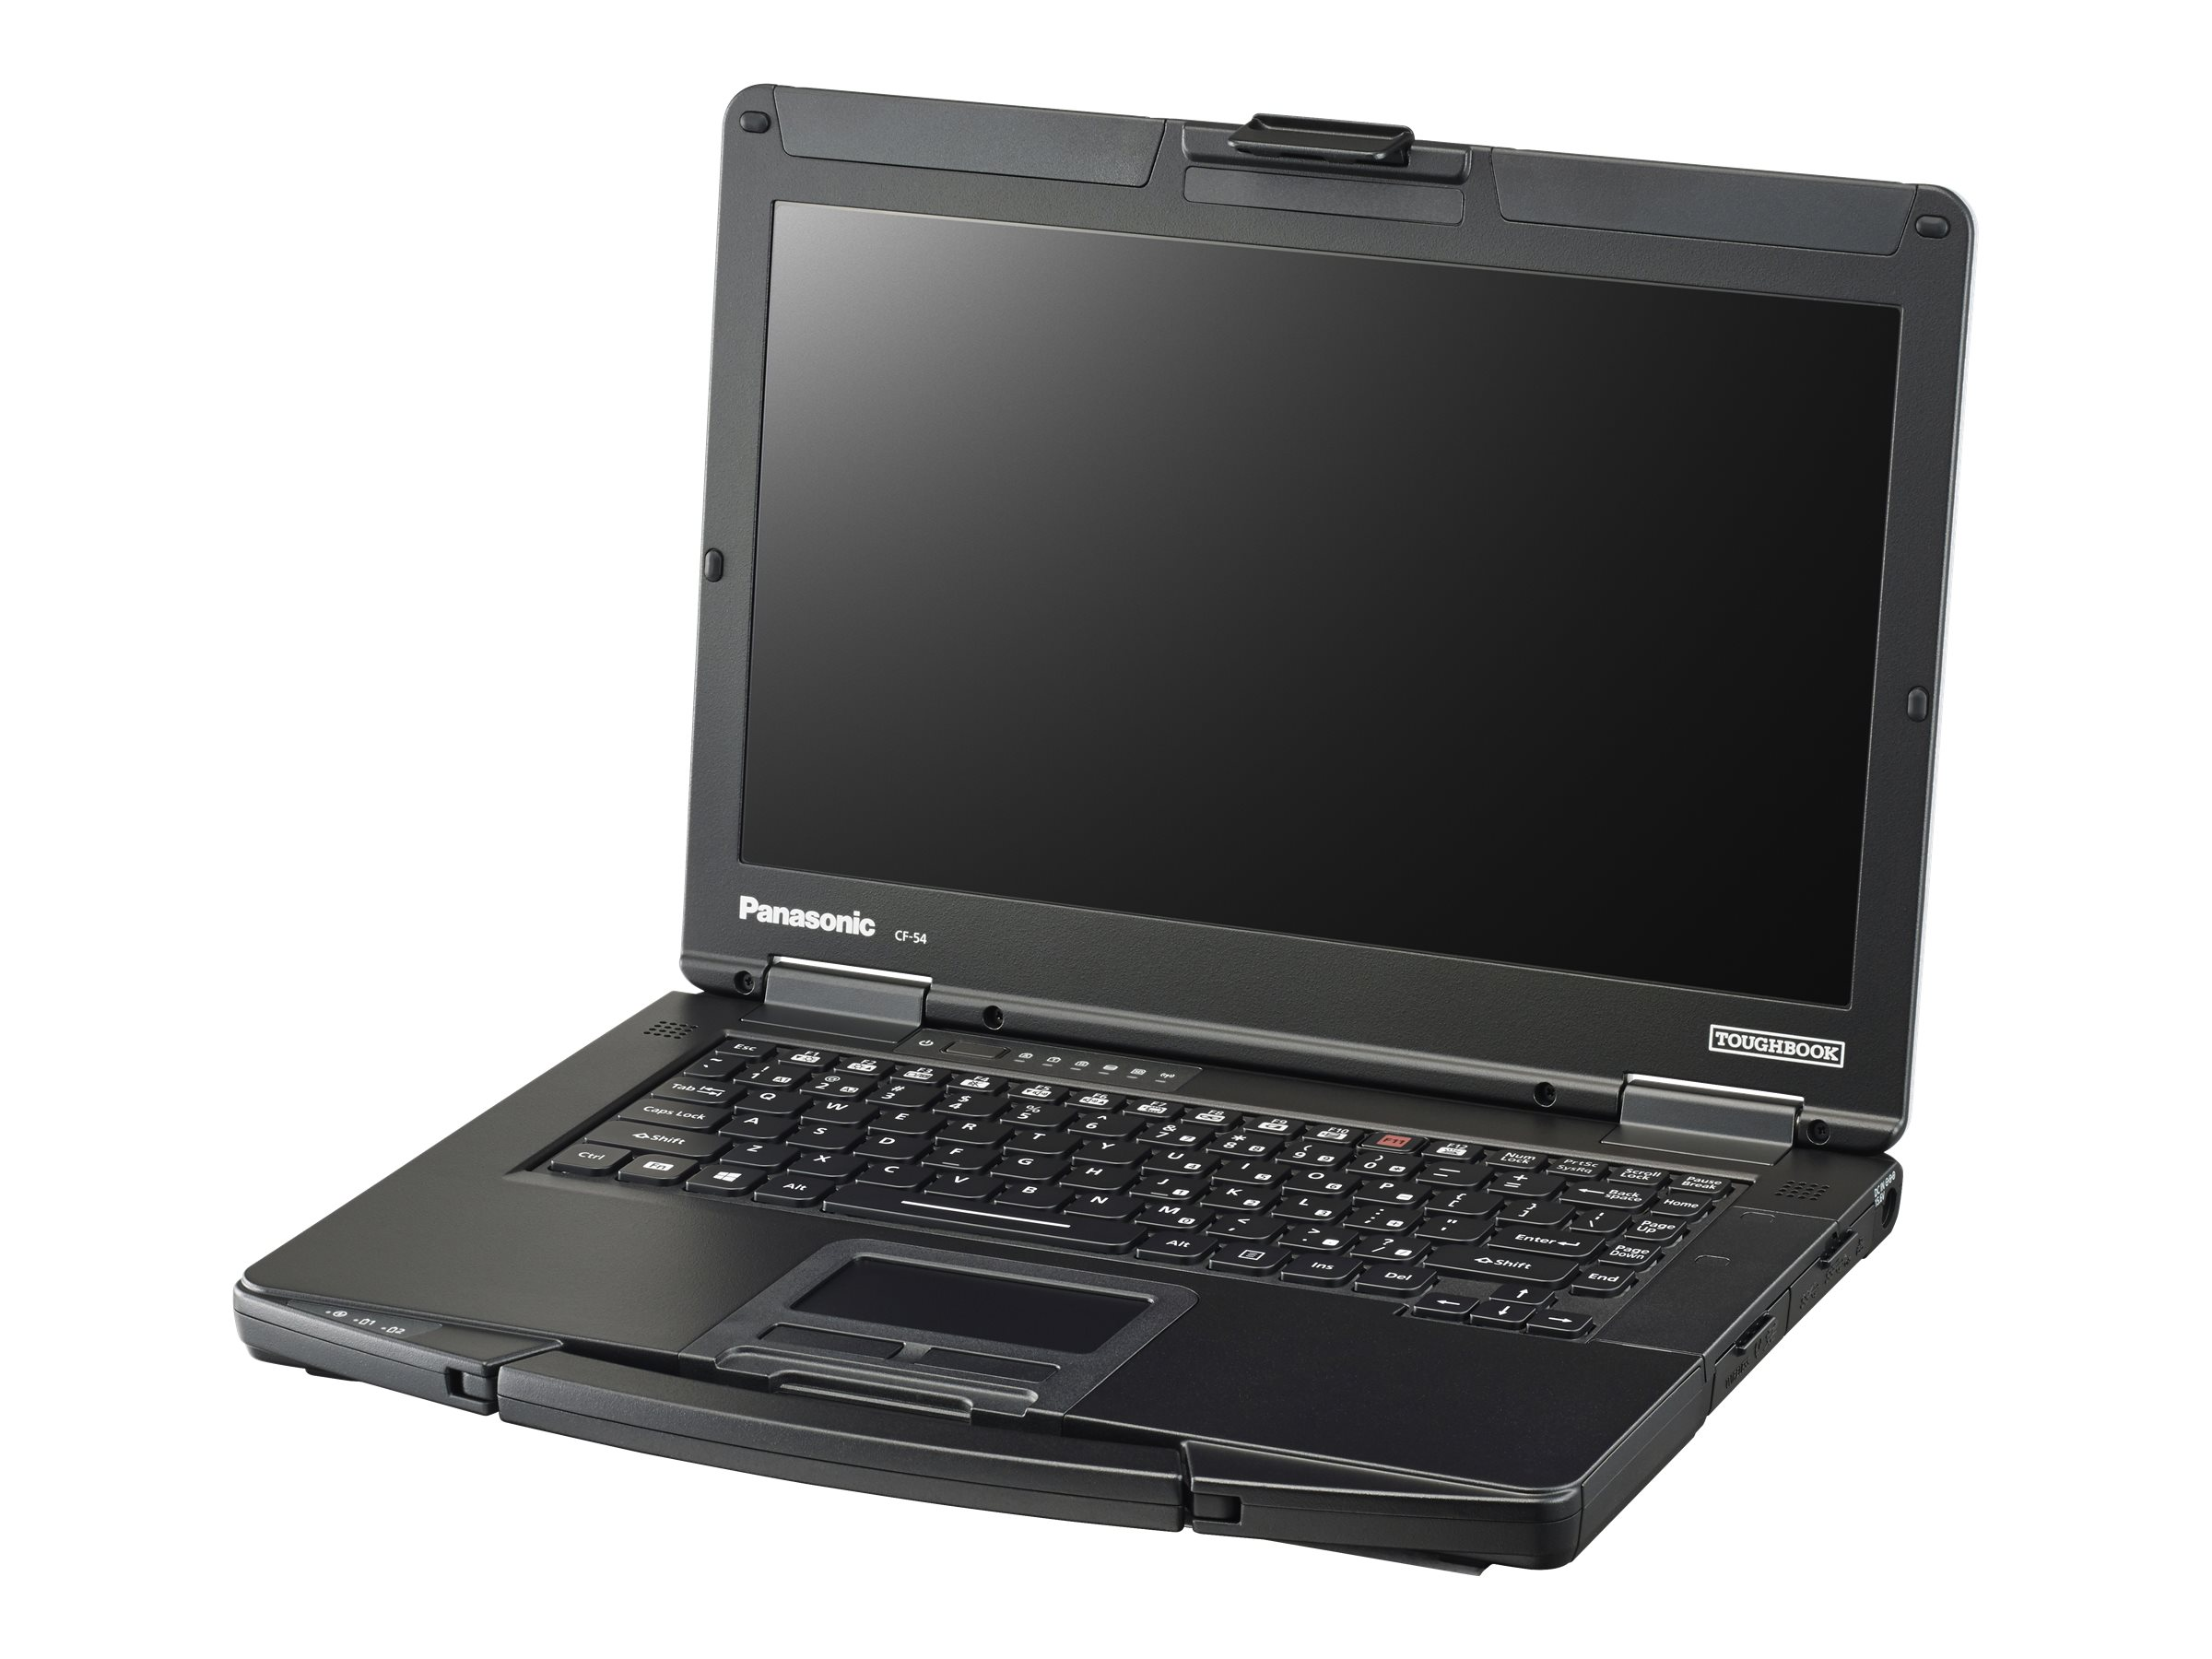 Panasonic Toughbook 54 Entry - Core i5 7300U / 2.6 GHz - Win 10 Pro - 4 GB RAM - 500 GB HDD - DVD SuperMulti